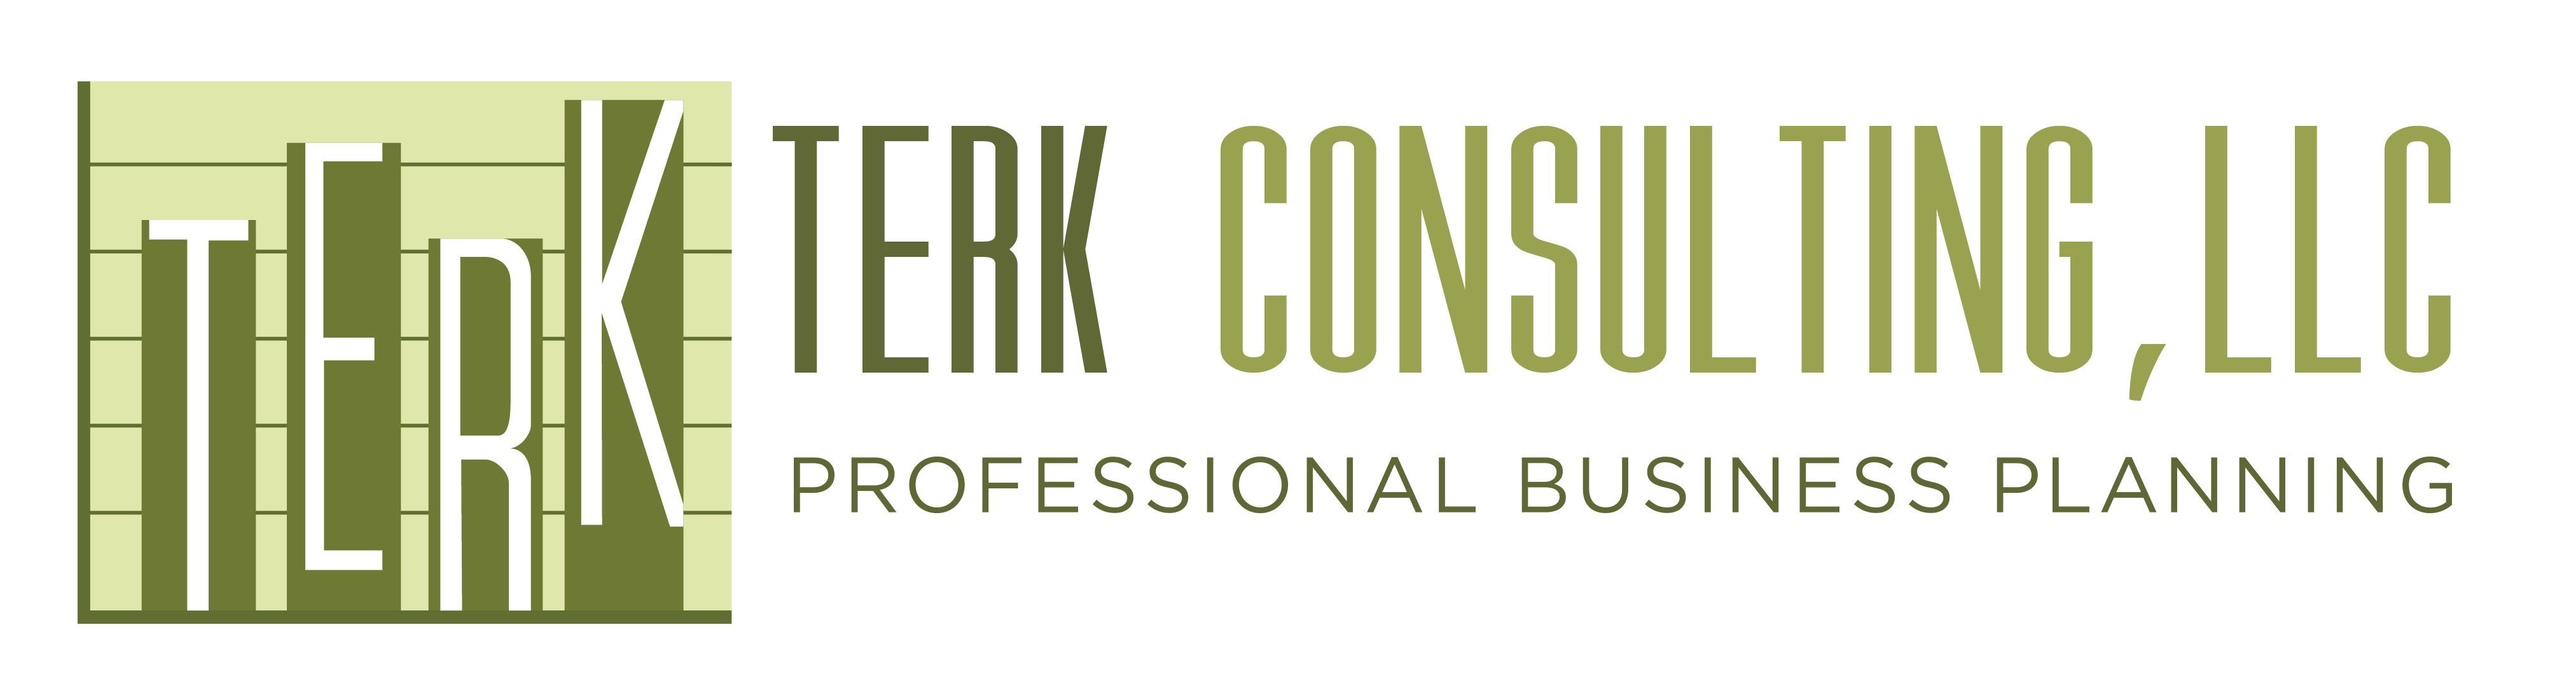 terk consulting business plans